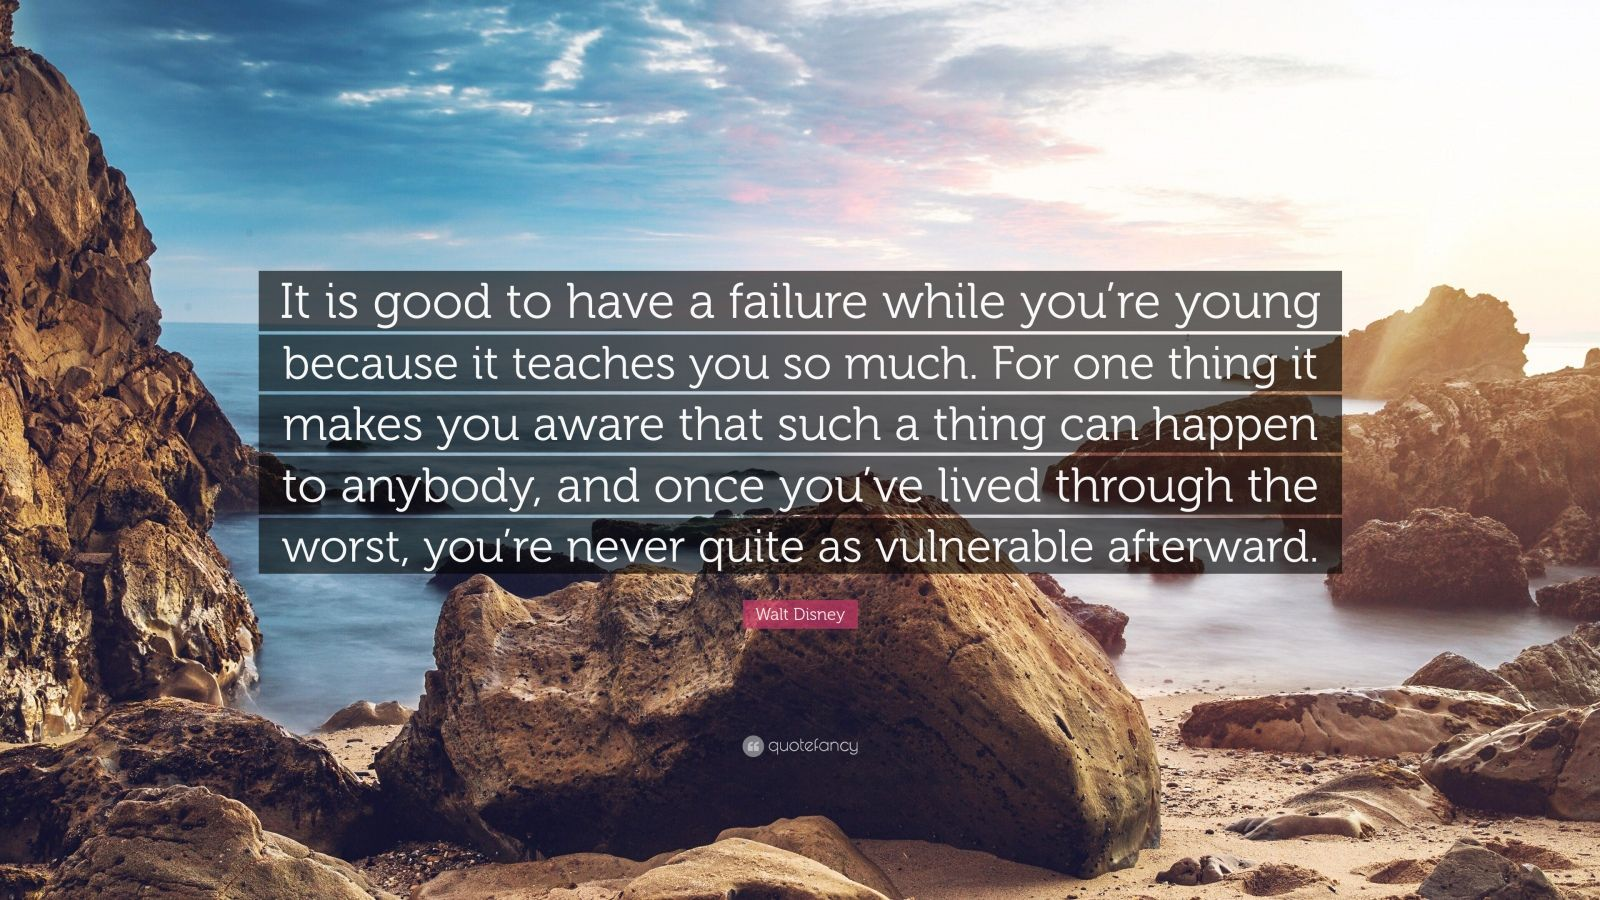 """Walt Disney Quote: """"It is good to have a failure while you're young because it teaches you so much. For one thing it makes you aware that such a thing can happen to anybody, and once you've lived through the worst, you're never quite as vulnerable afterward."""""""